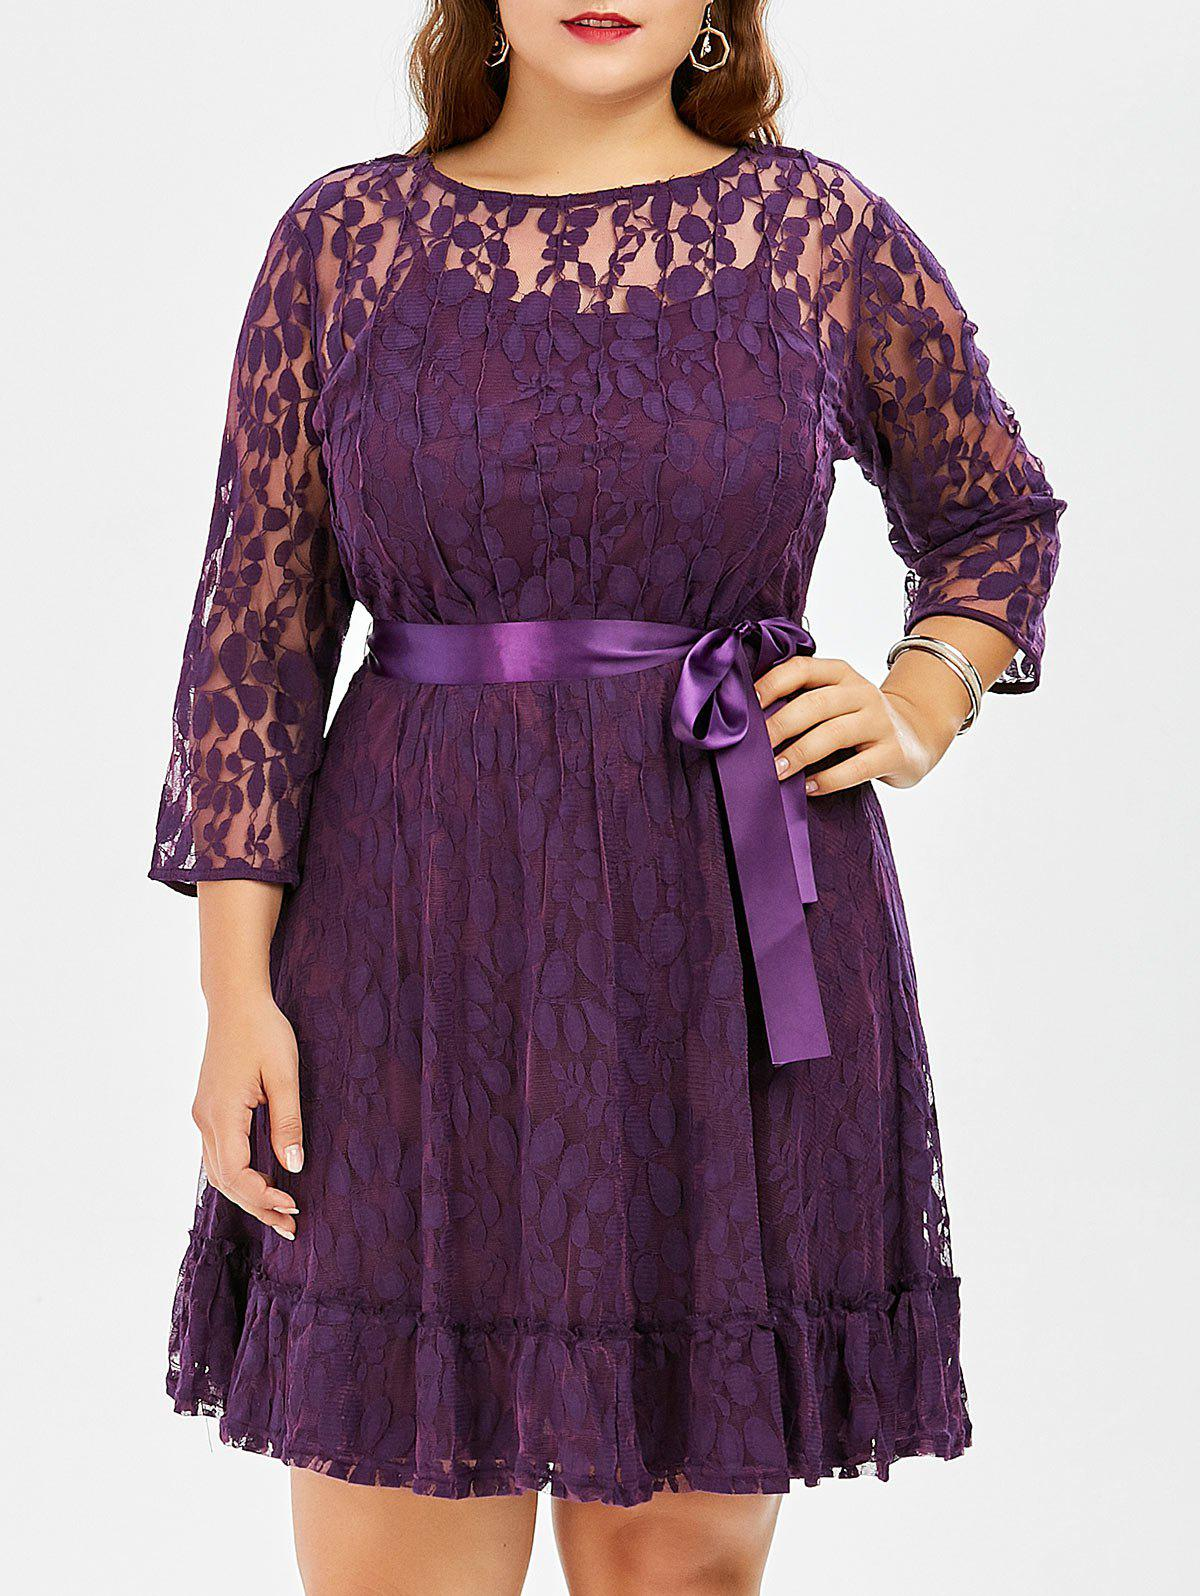 Fancy Lace Plus Size Skater Dress with Sleeves